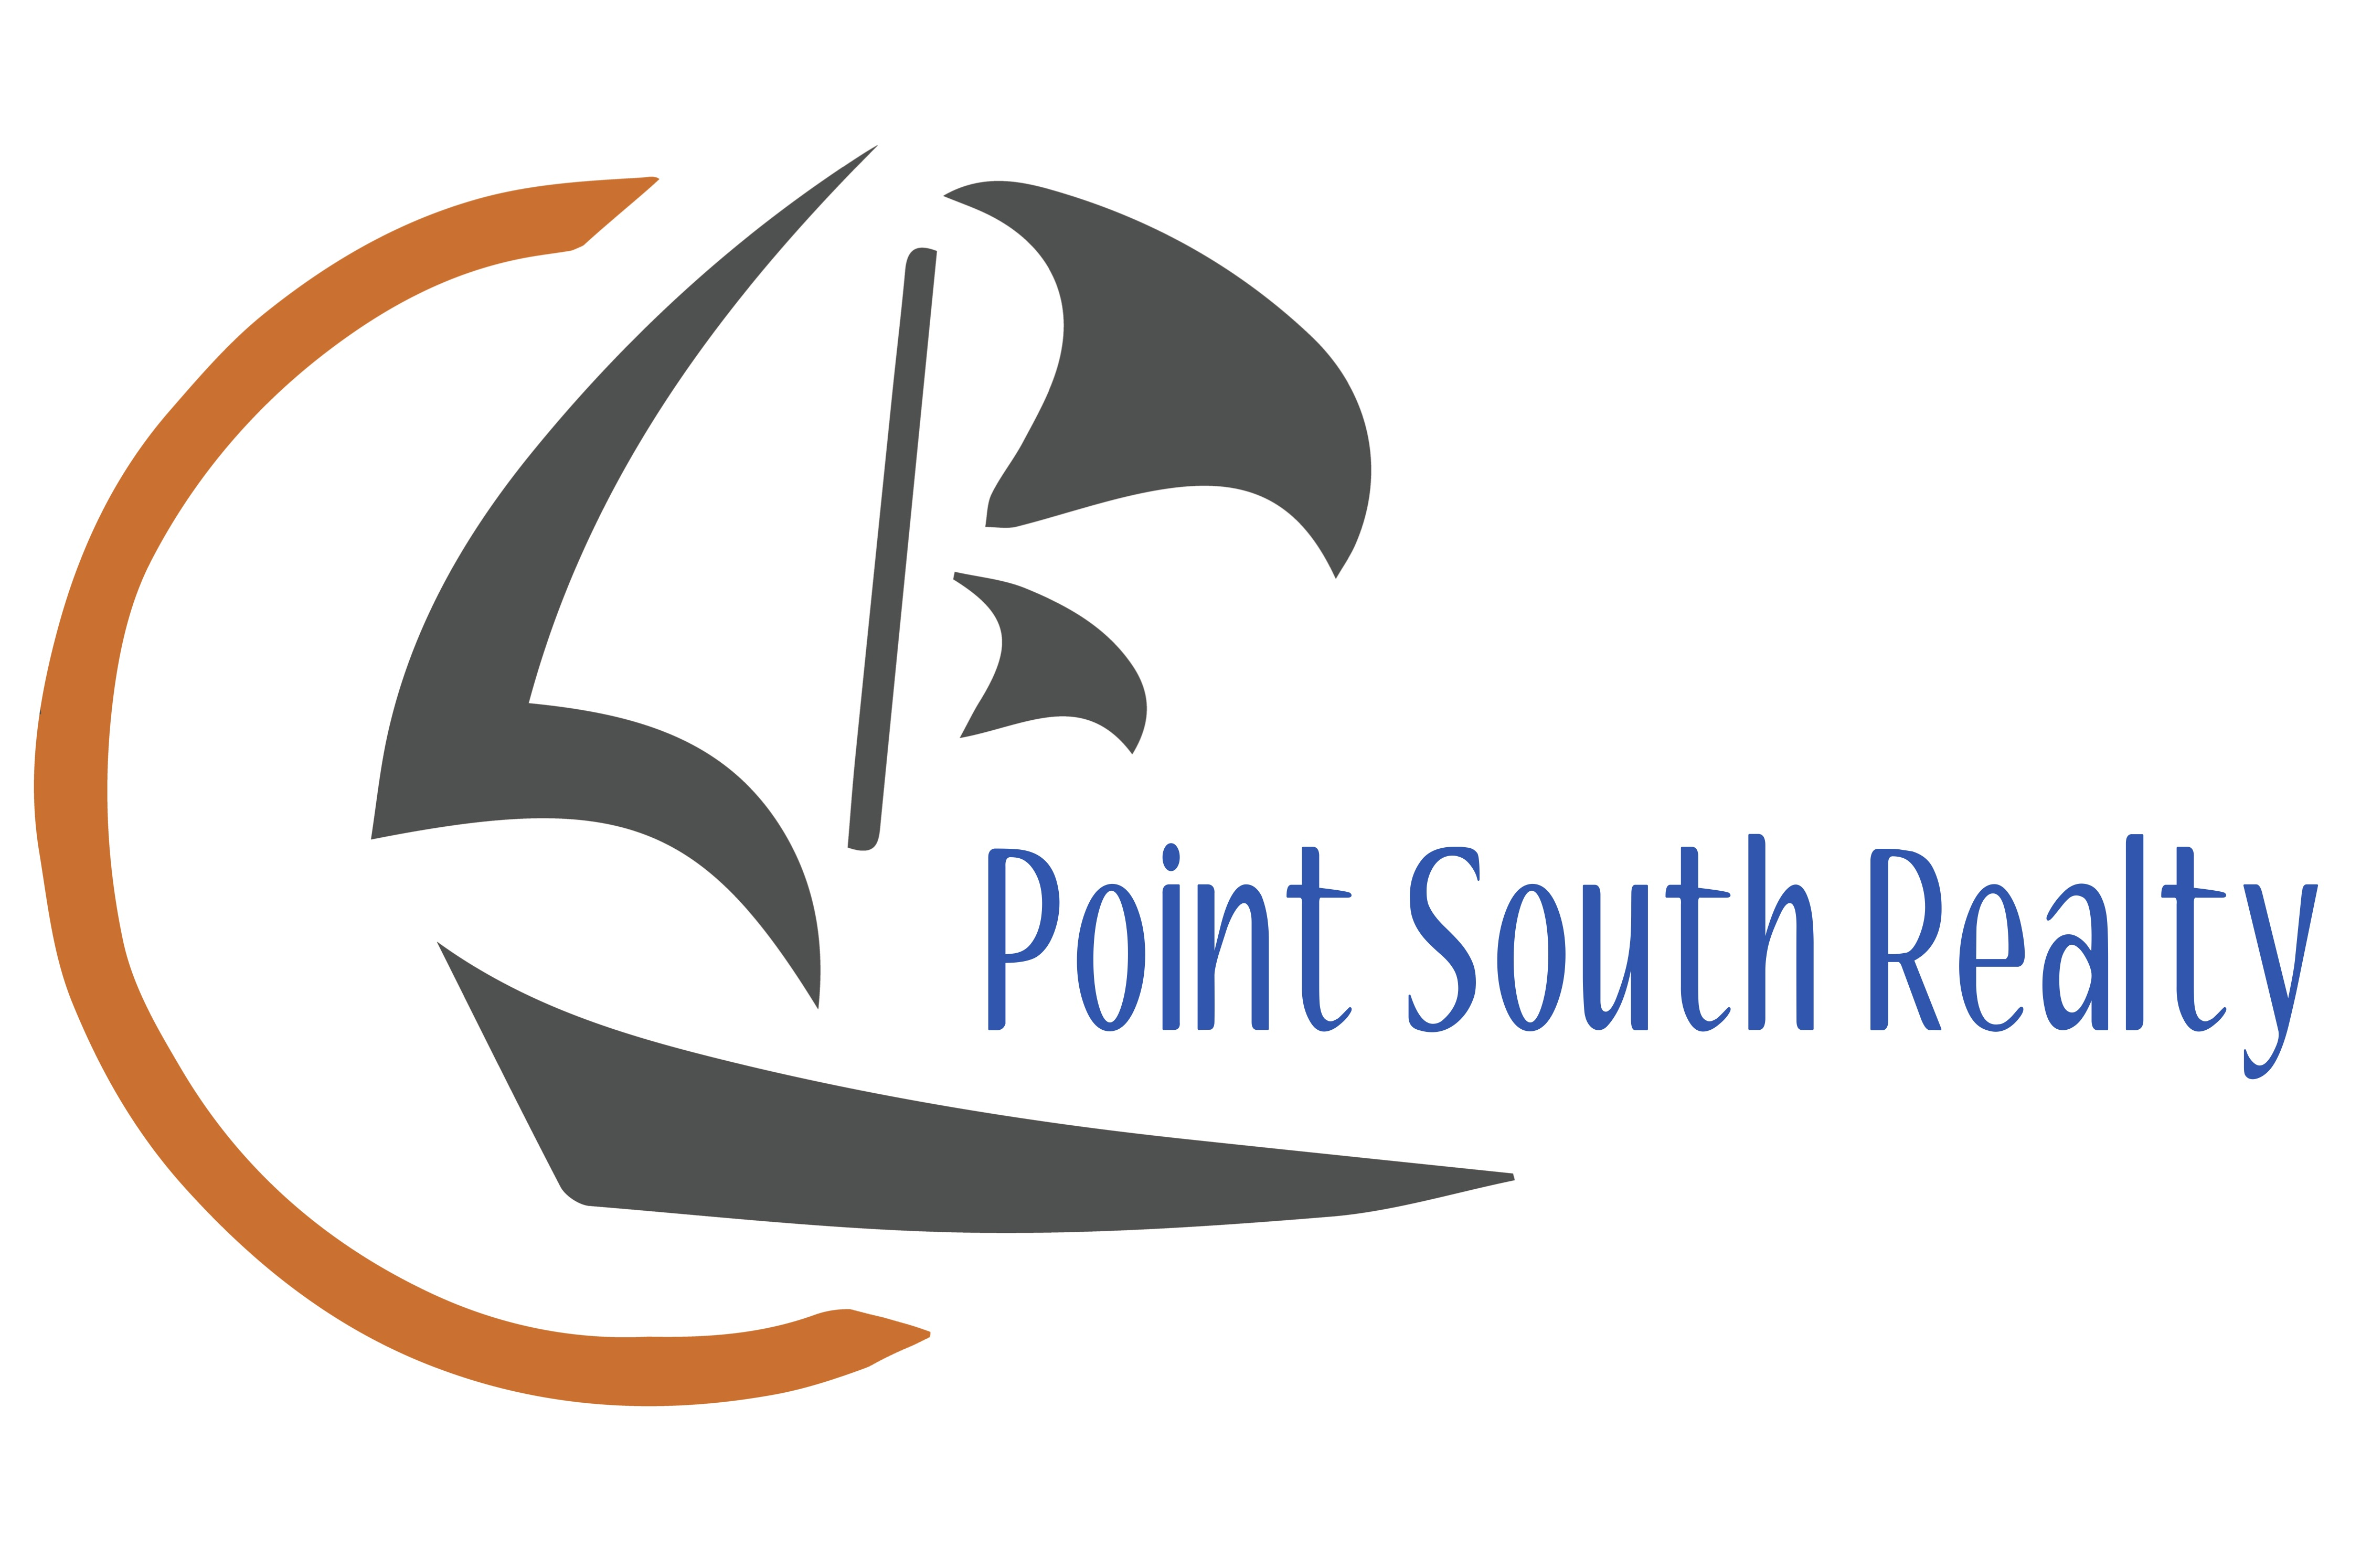 Point South Realty